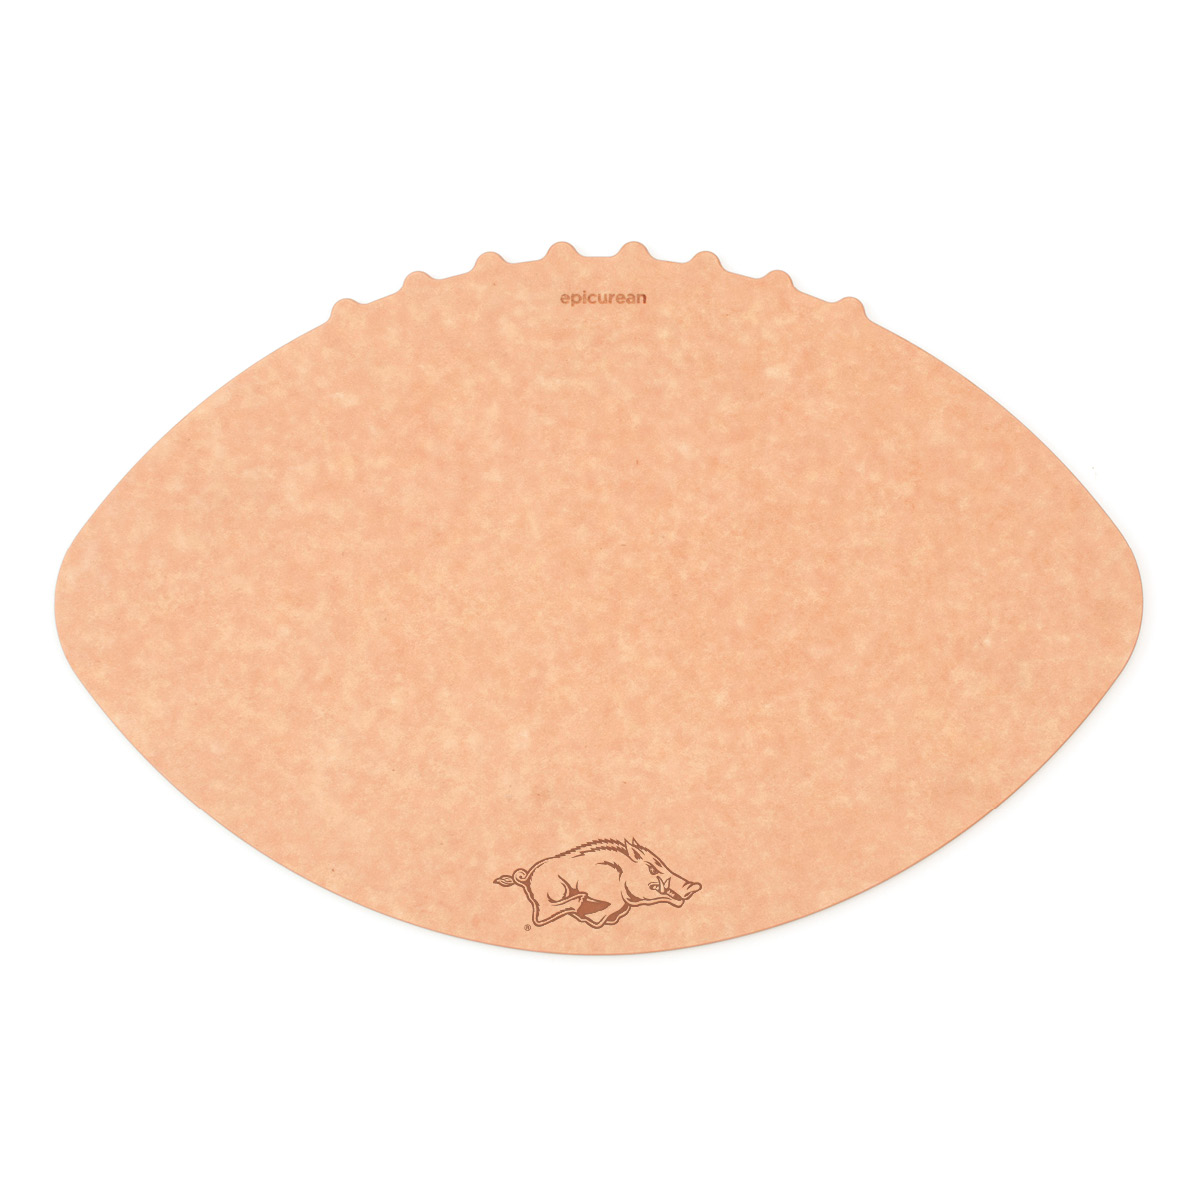 Epicurean University of Arkansas 16 x 10.5 Inch Football Cutting and Serving Board